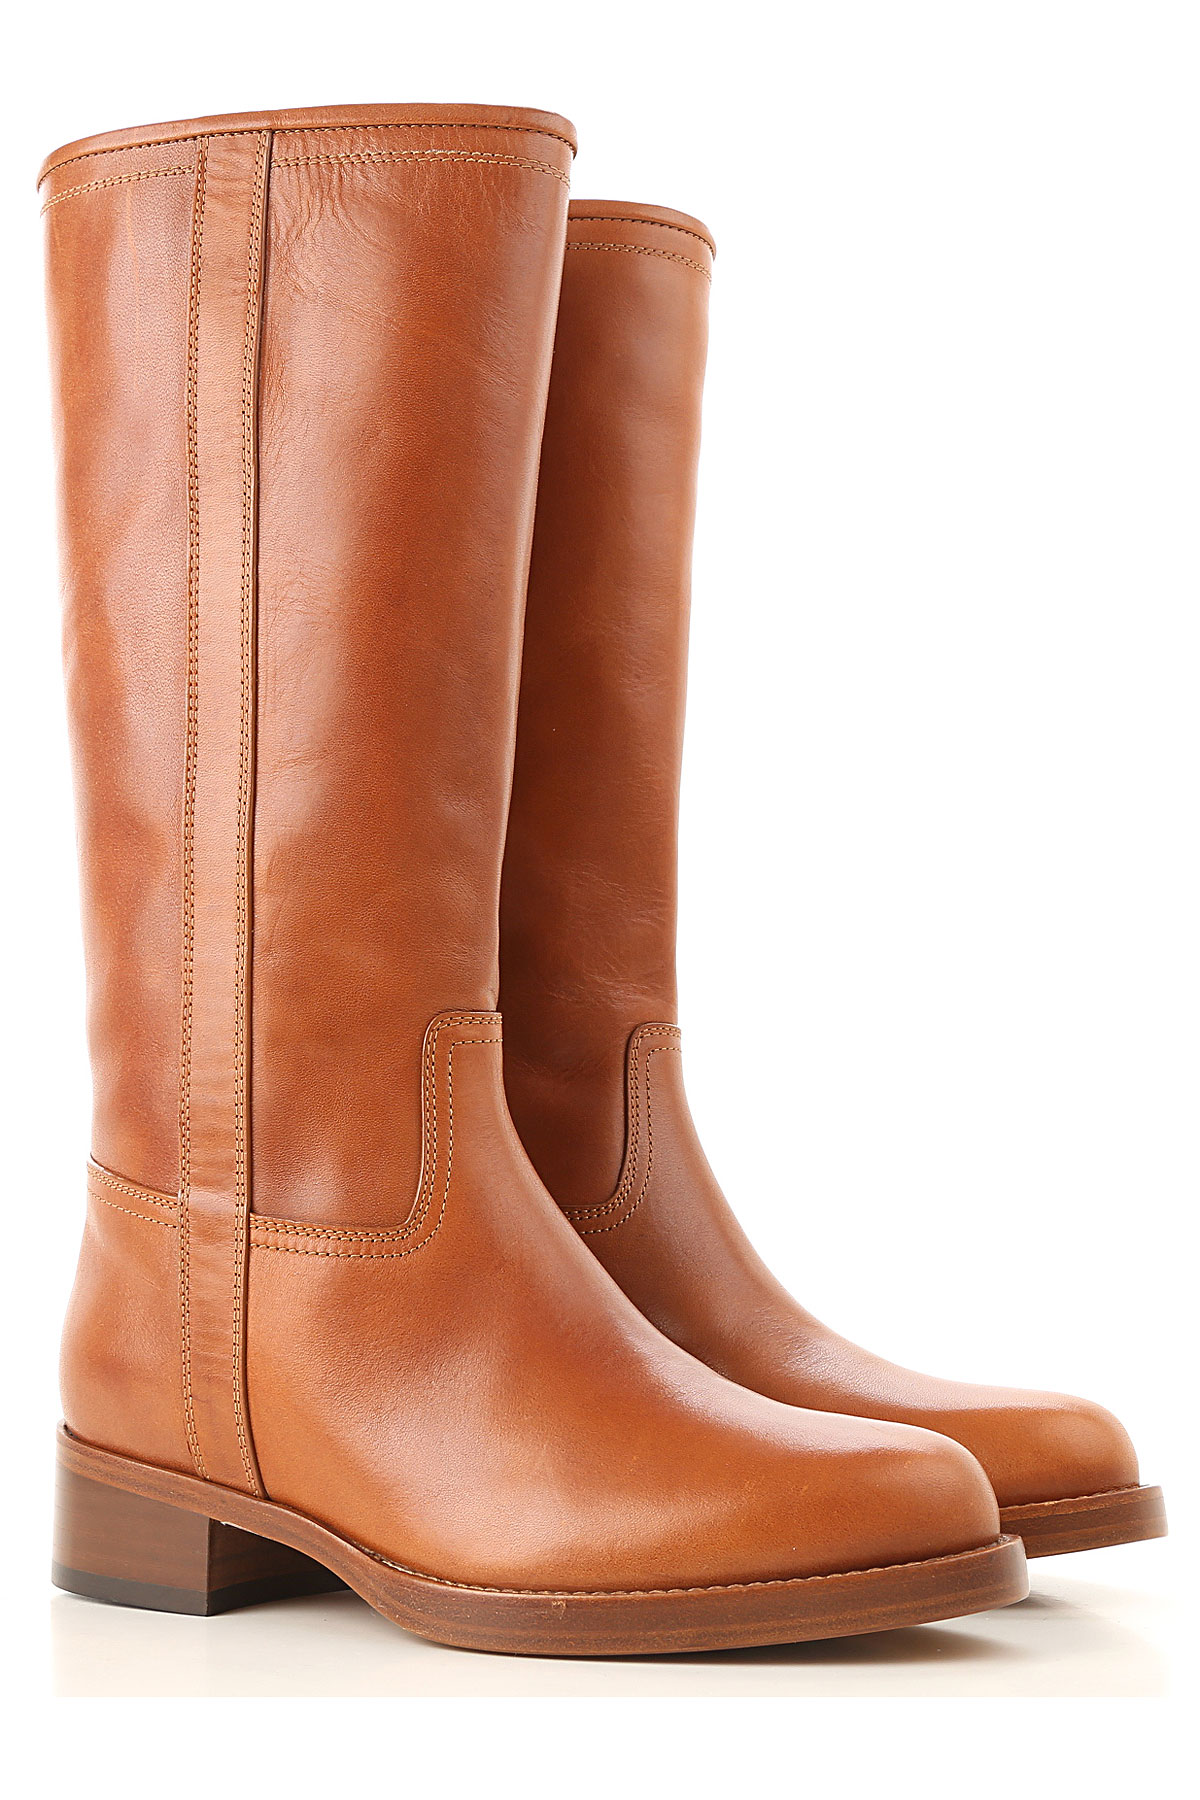 Image of Etro Boots for Women, Booties, Cognac, Leather, 2017, 7 8 8.5 9